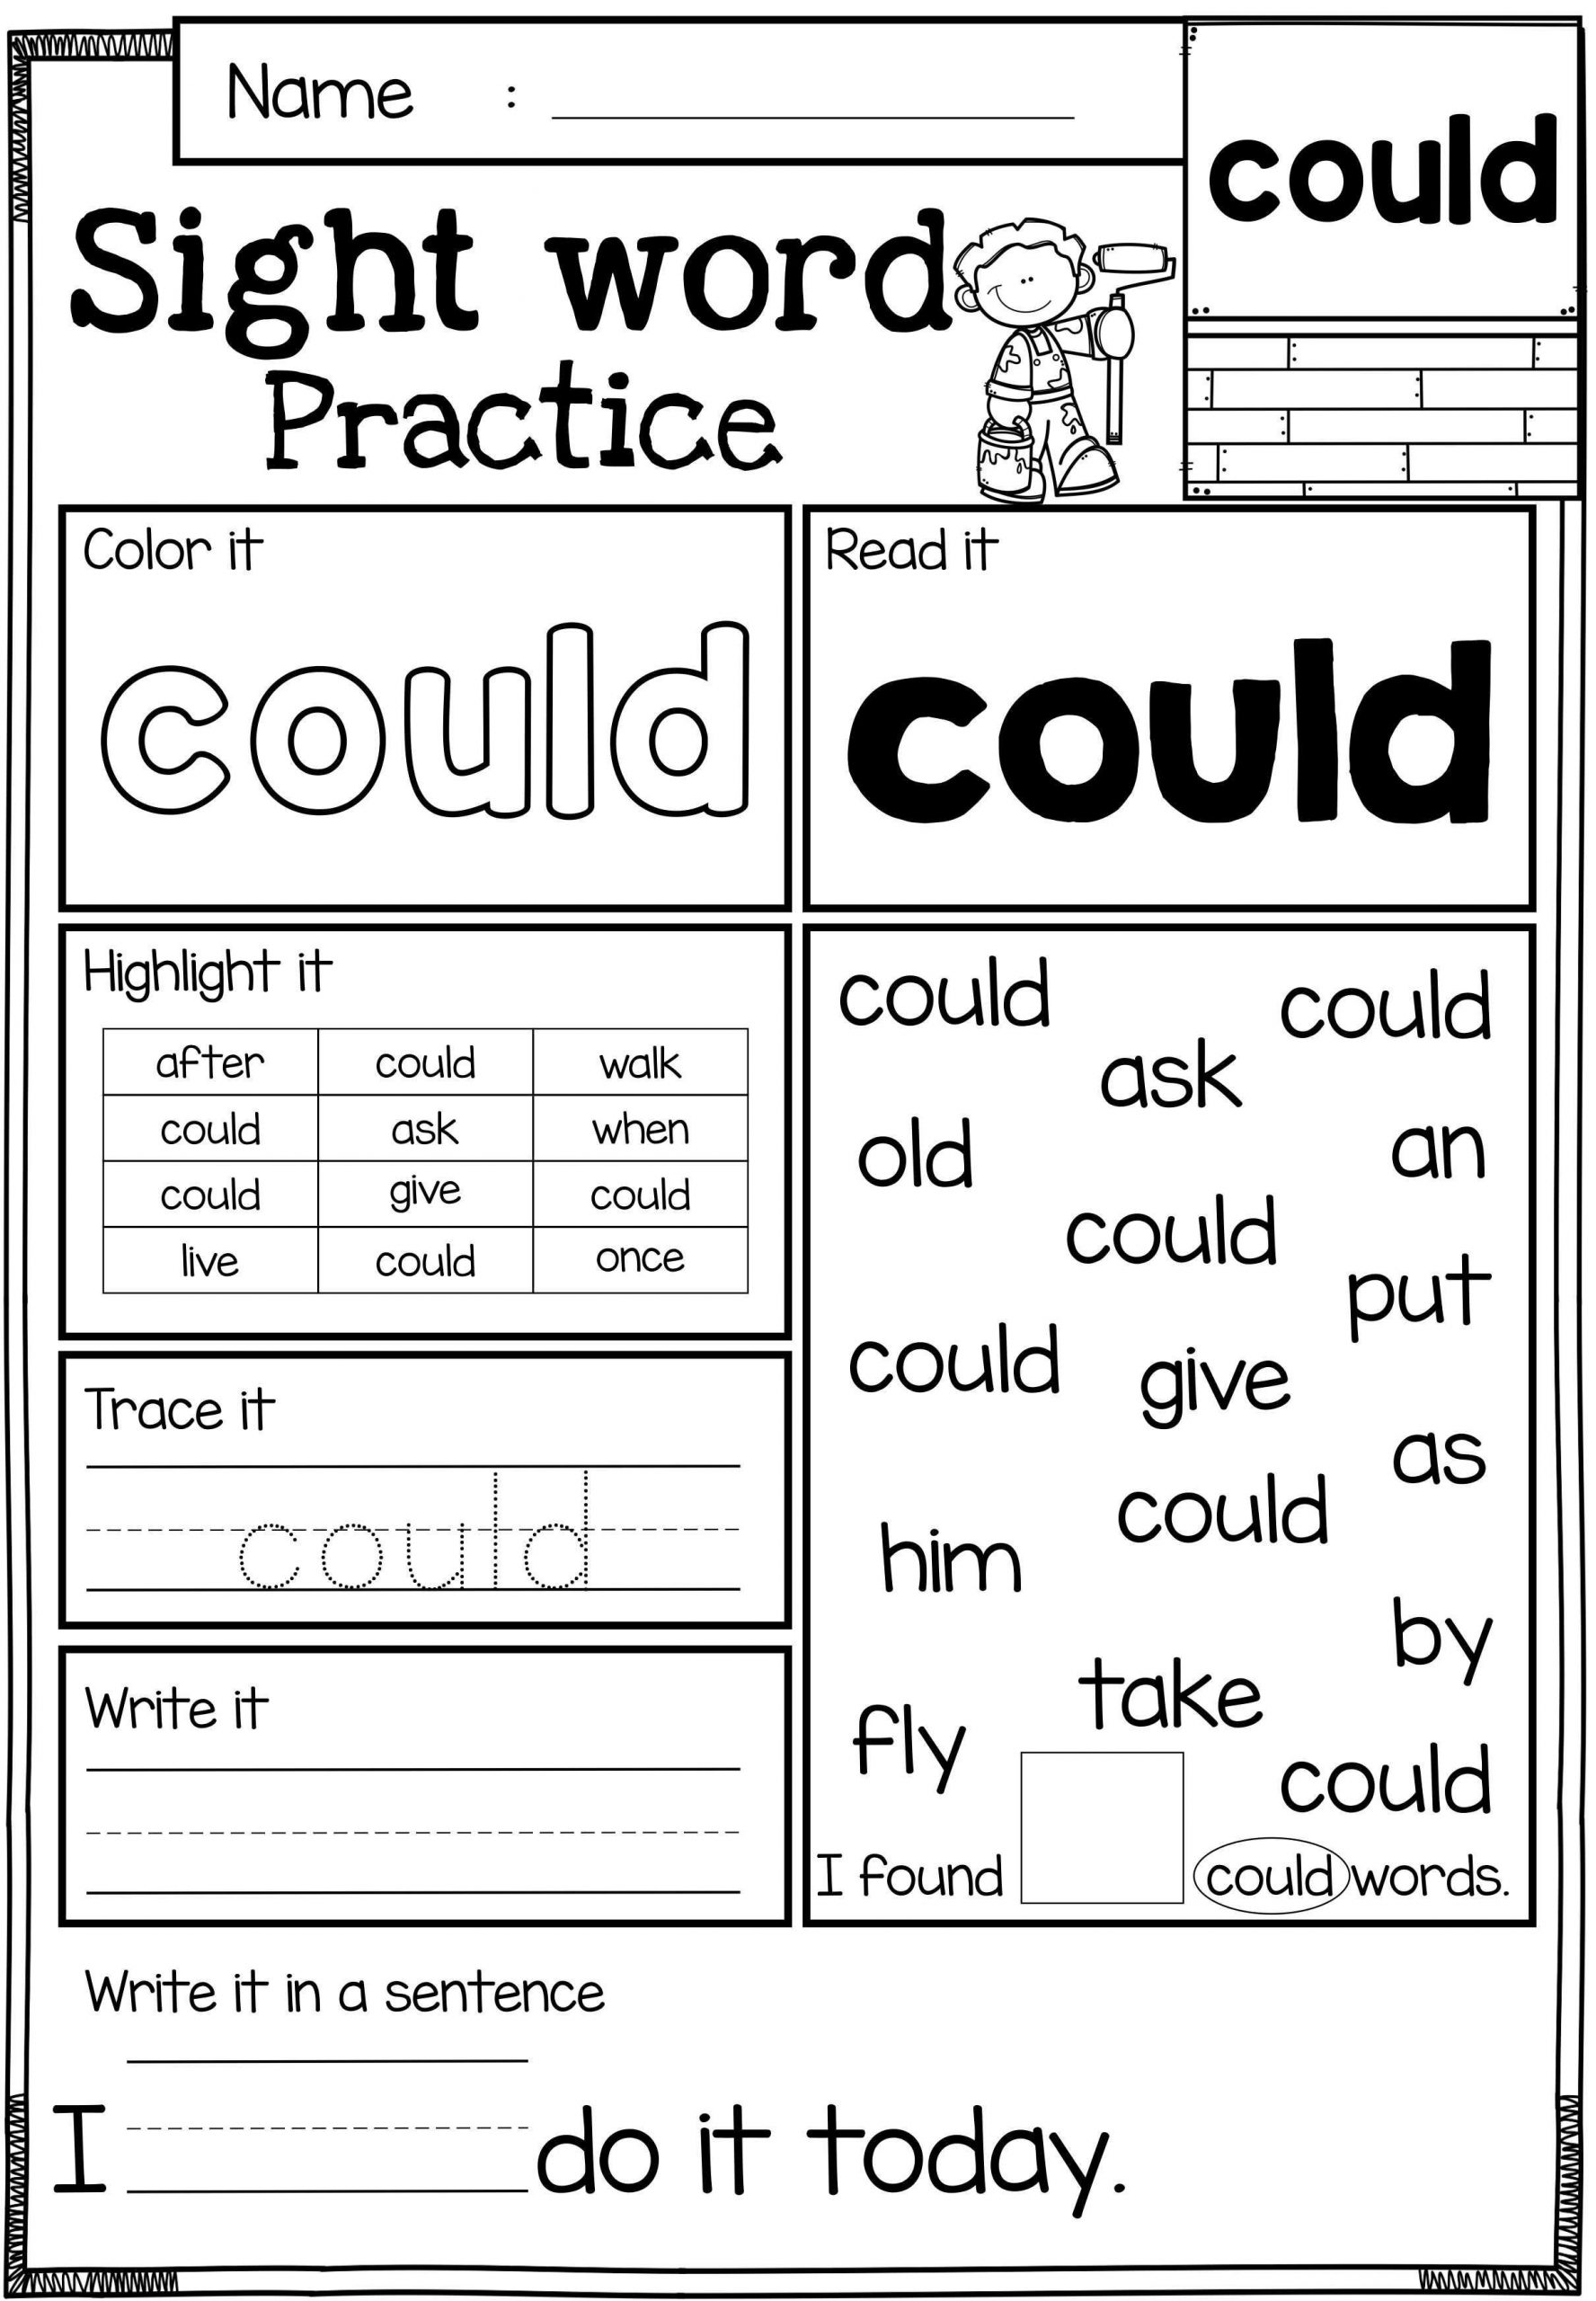 Second Grade Sight Words Worksheets Free Sight Word Practice these Sight Word Practice Pages